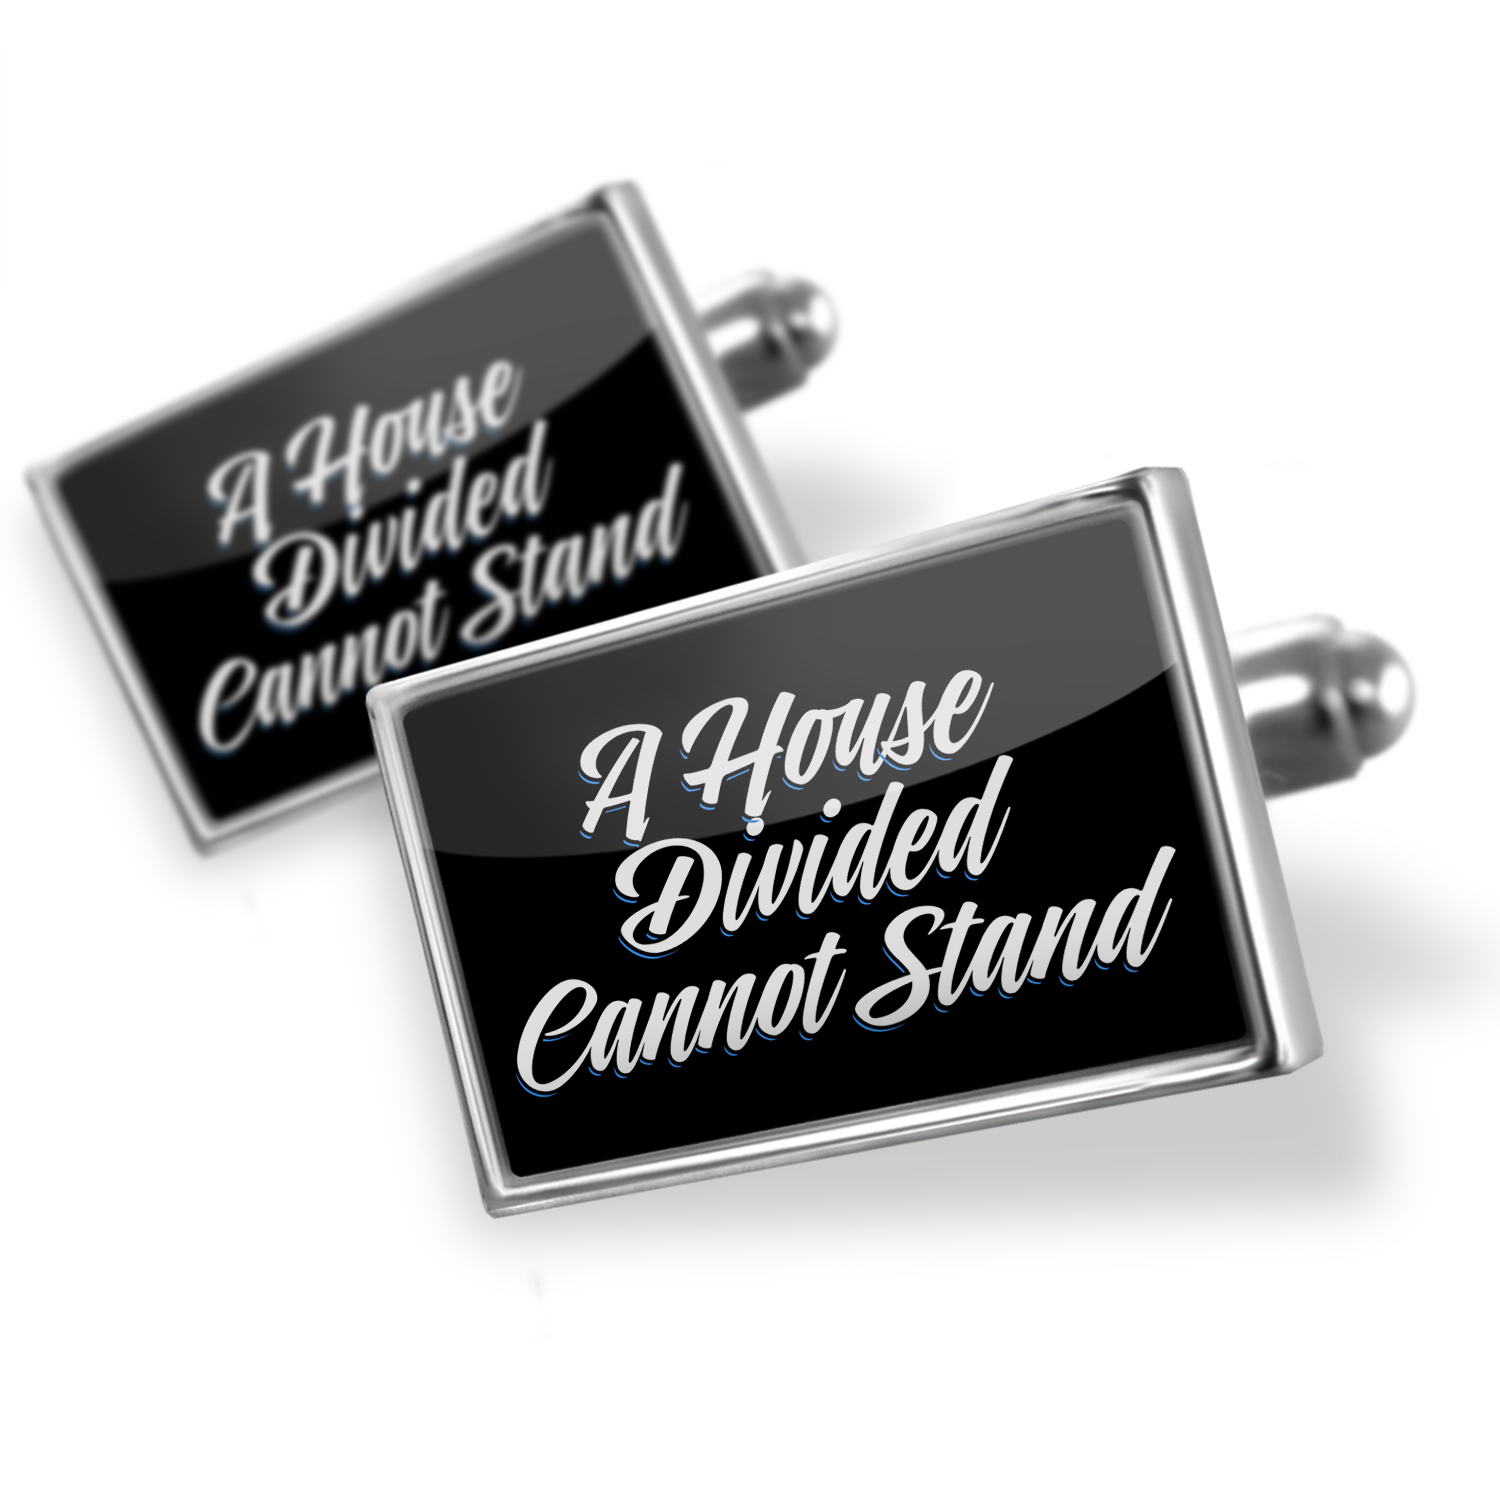 Cufflinks Classic design A House Divided Cannot Stand - NEONBLOND